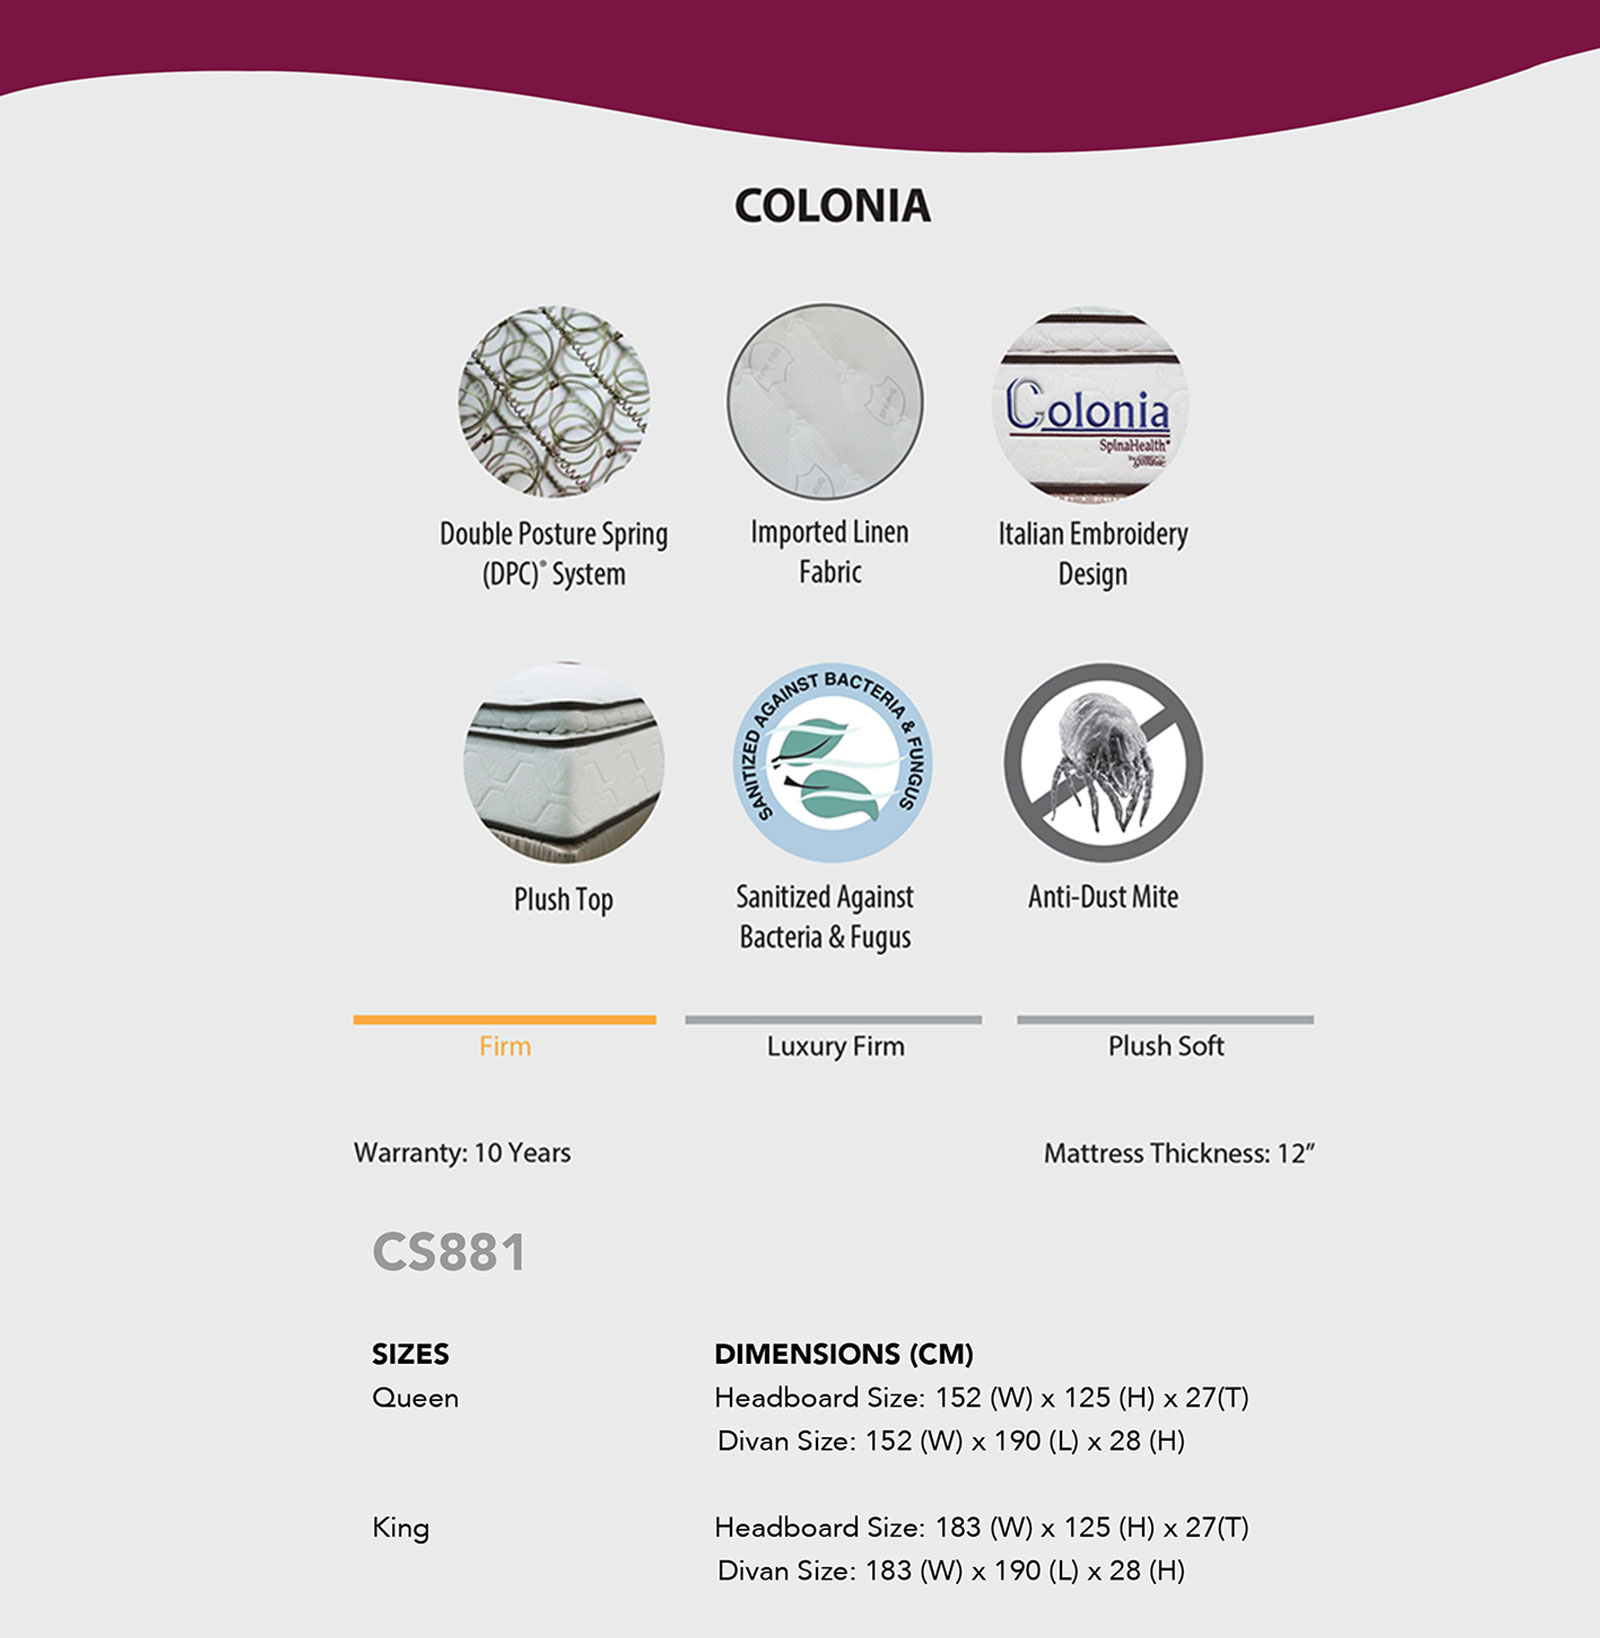 gn-colonia-details.jpg